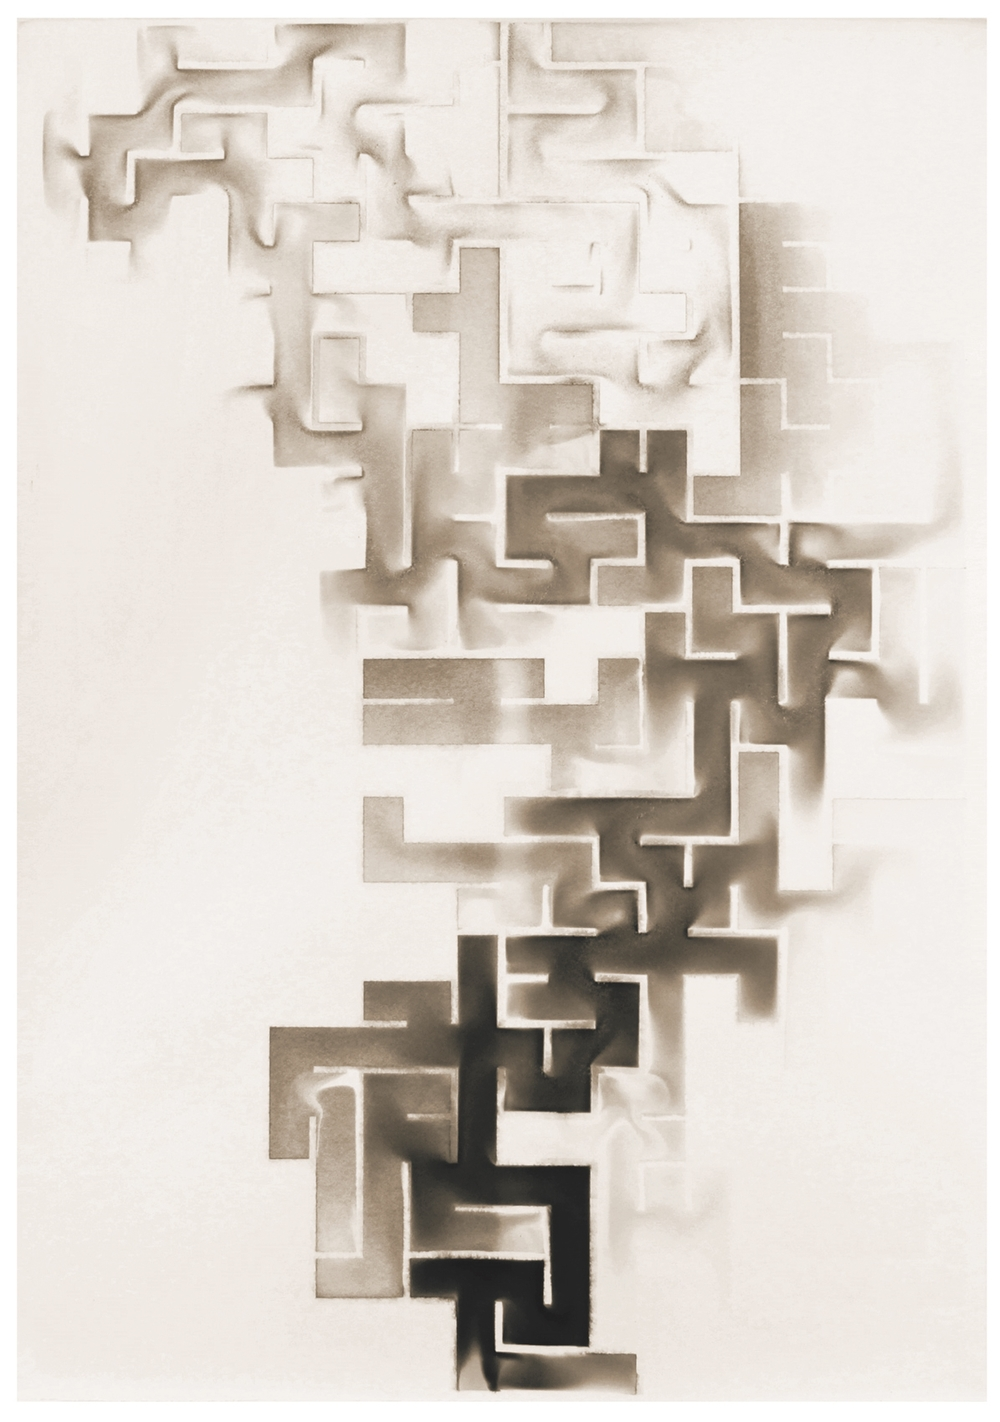 Troika,  Labyrinth , 2014, soot on paper, 44 x 30 x 3 inches